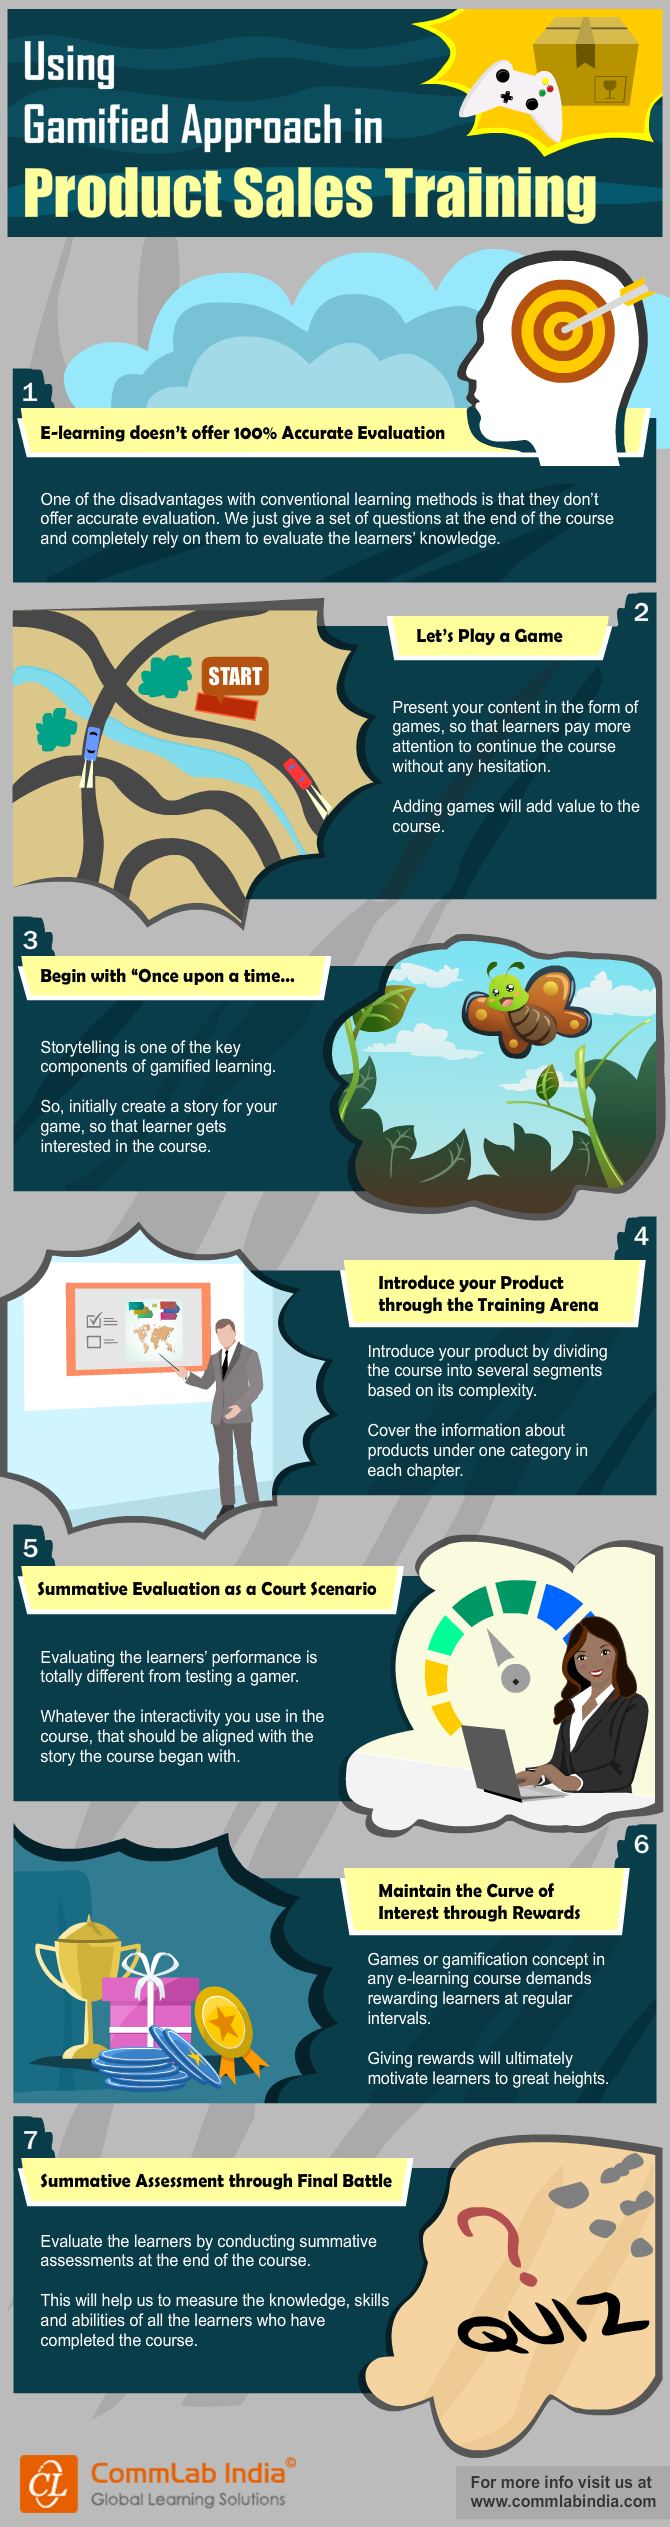 Using Gamified Approach in Product Sales Training [Infographic]